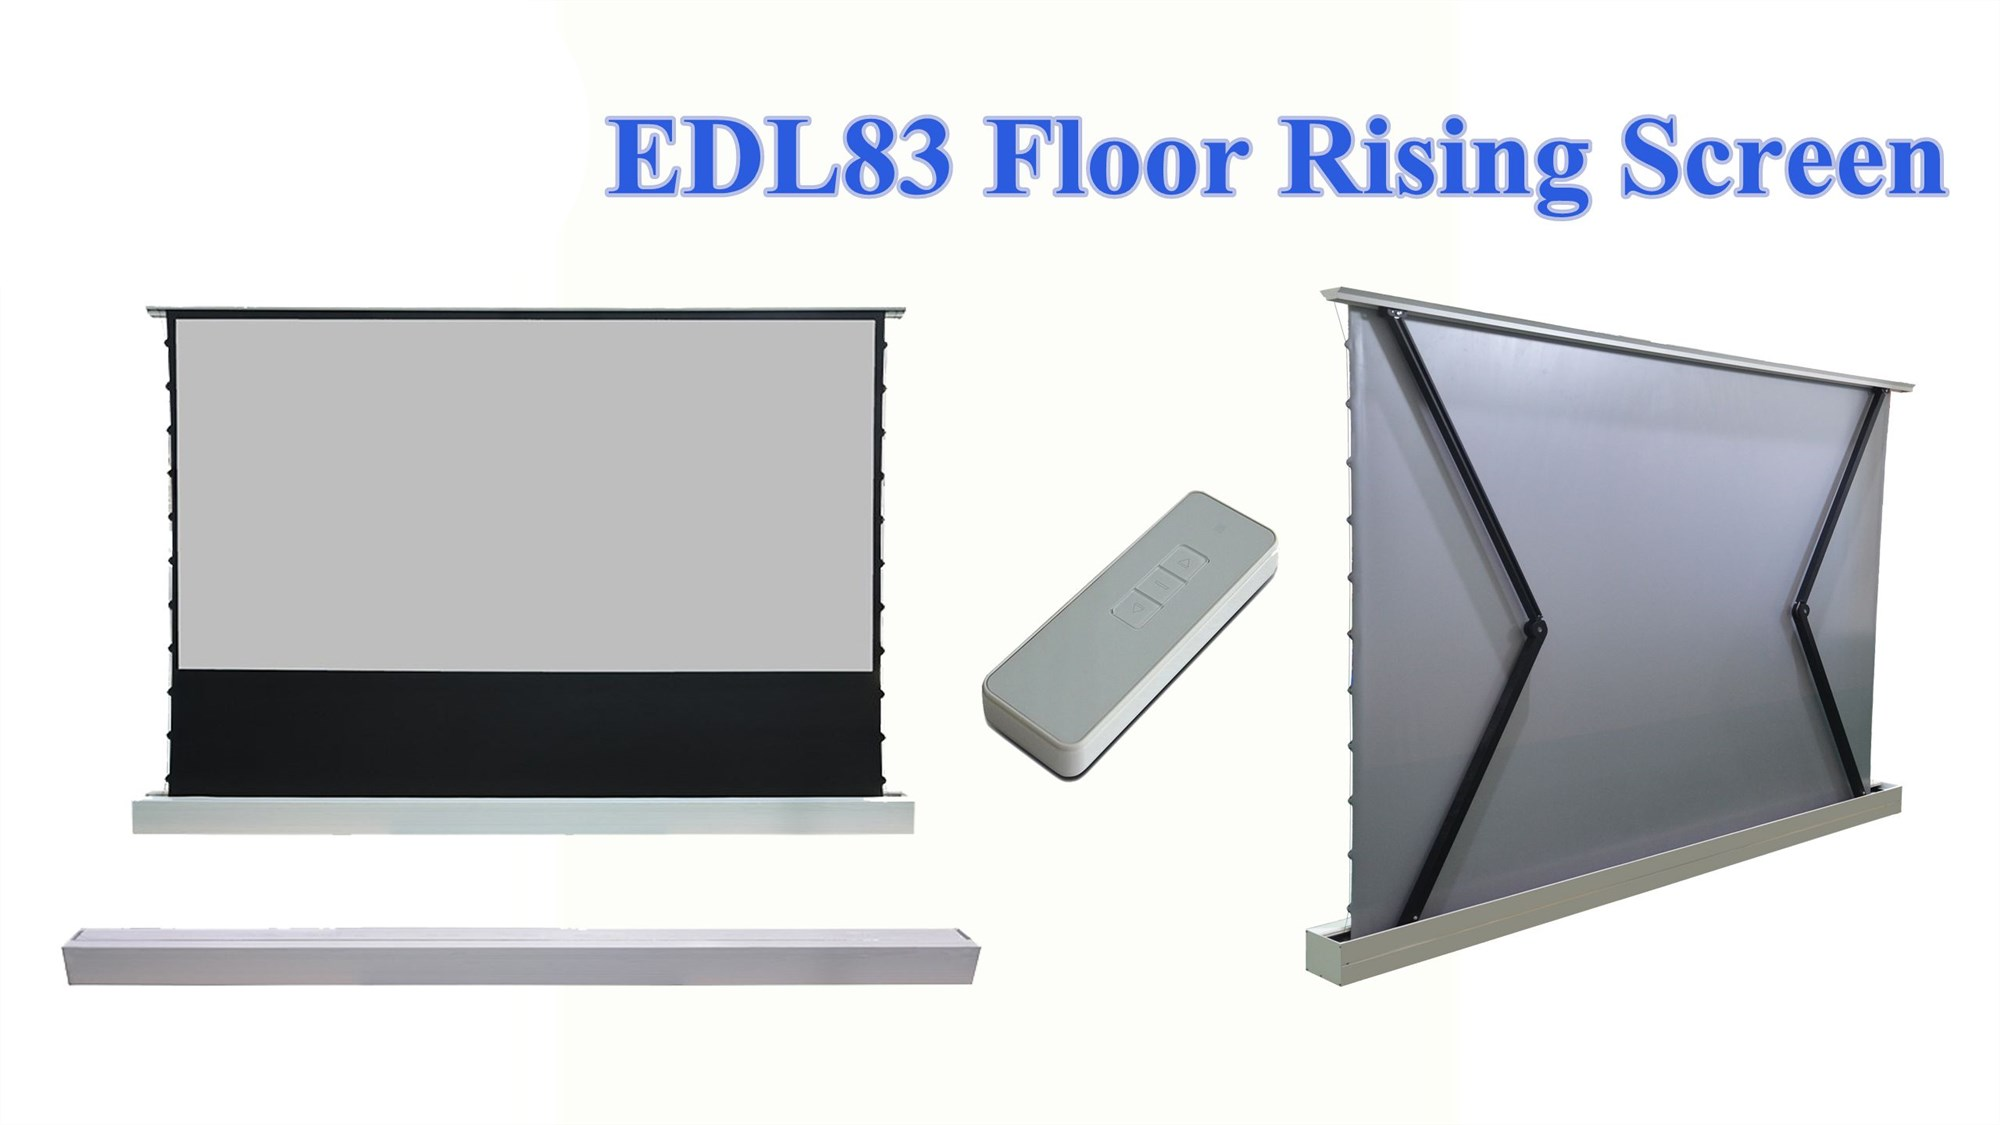 EDL83 motorized floor rising projector screen with WF1 and remote control